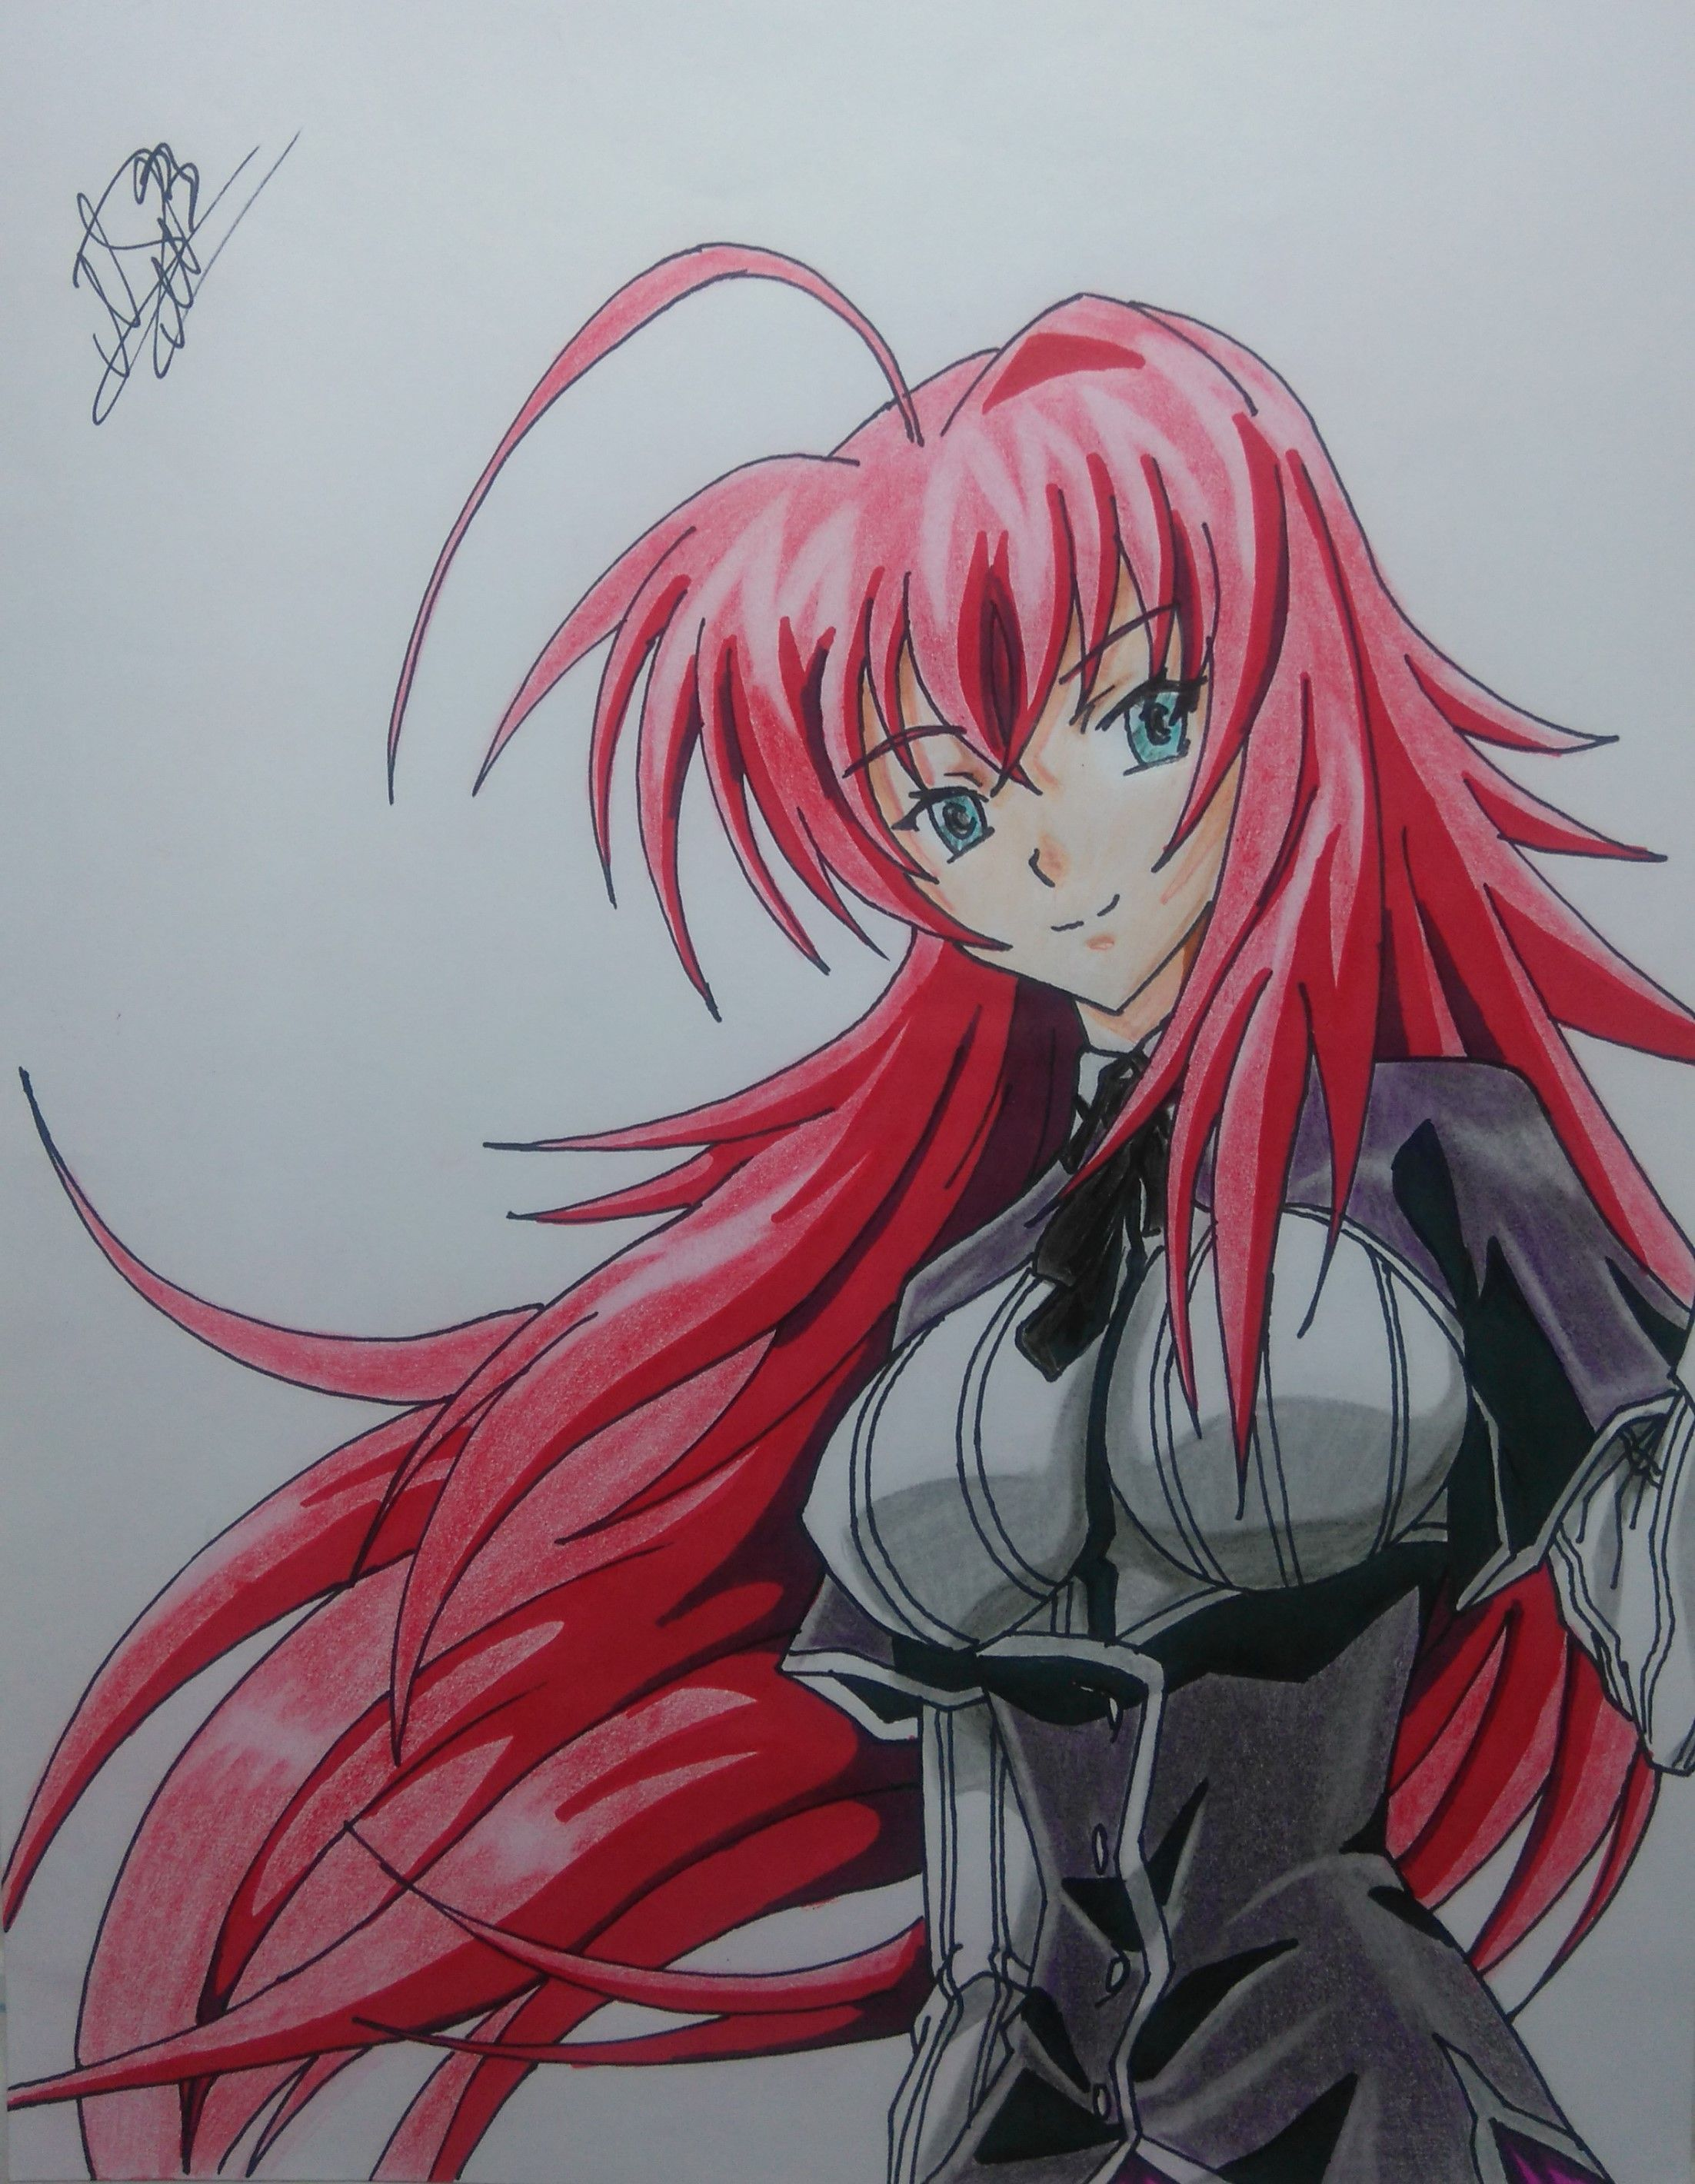 Rias Gremory from Highschool DxD mira el proceso (speed